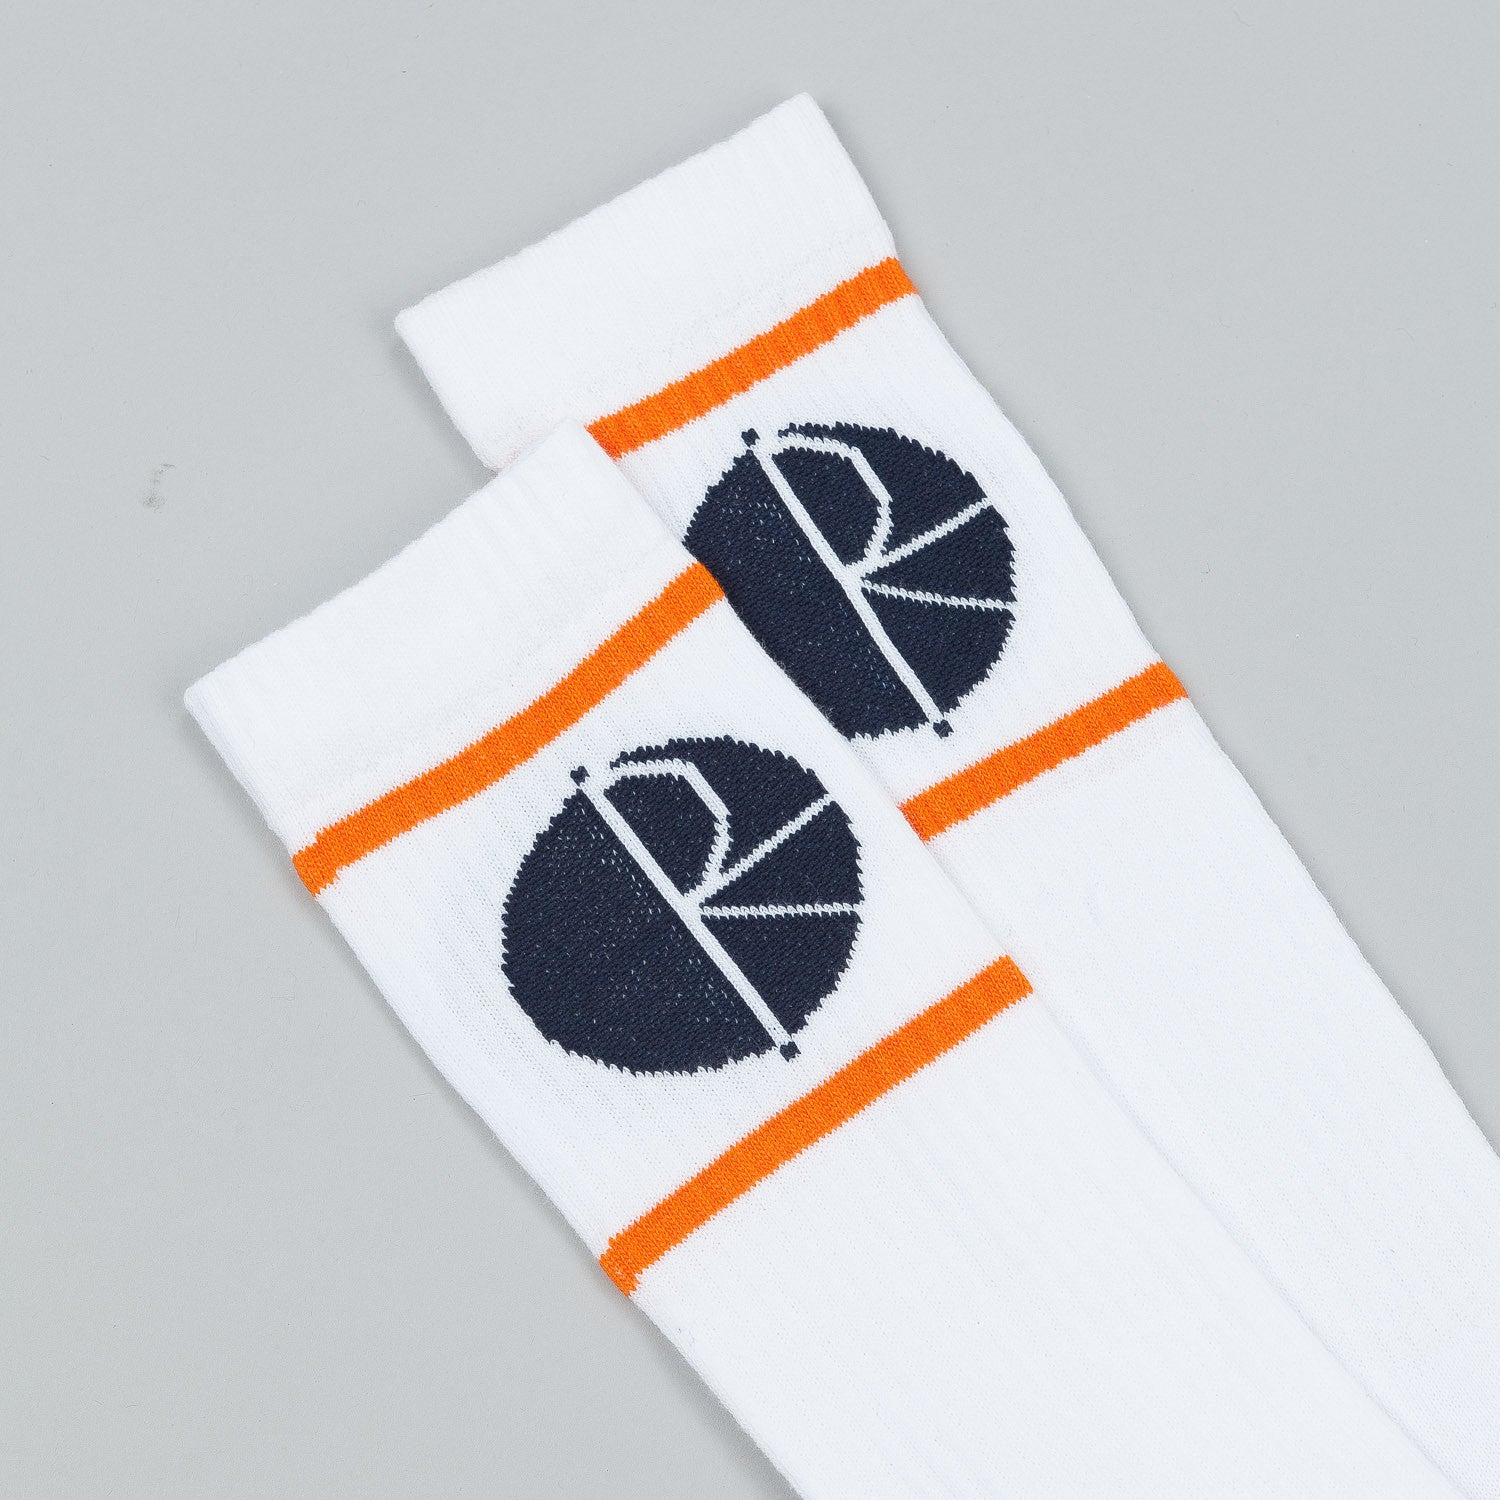 Polar Happy Sad Fill Logo Stripes & Blocks Mid High Socks - White / Orange / Navy